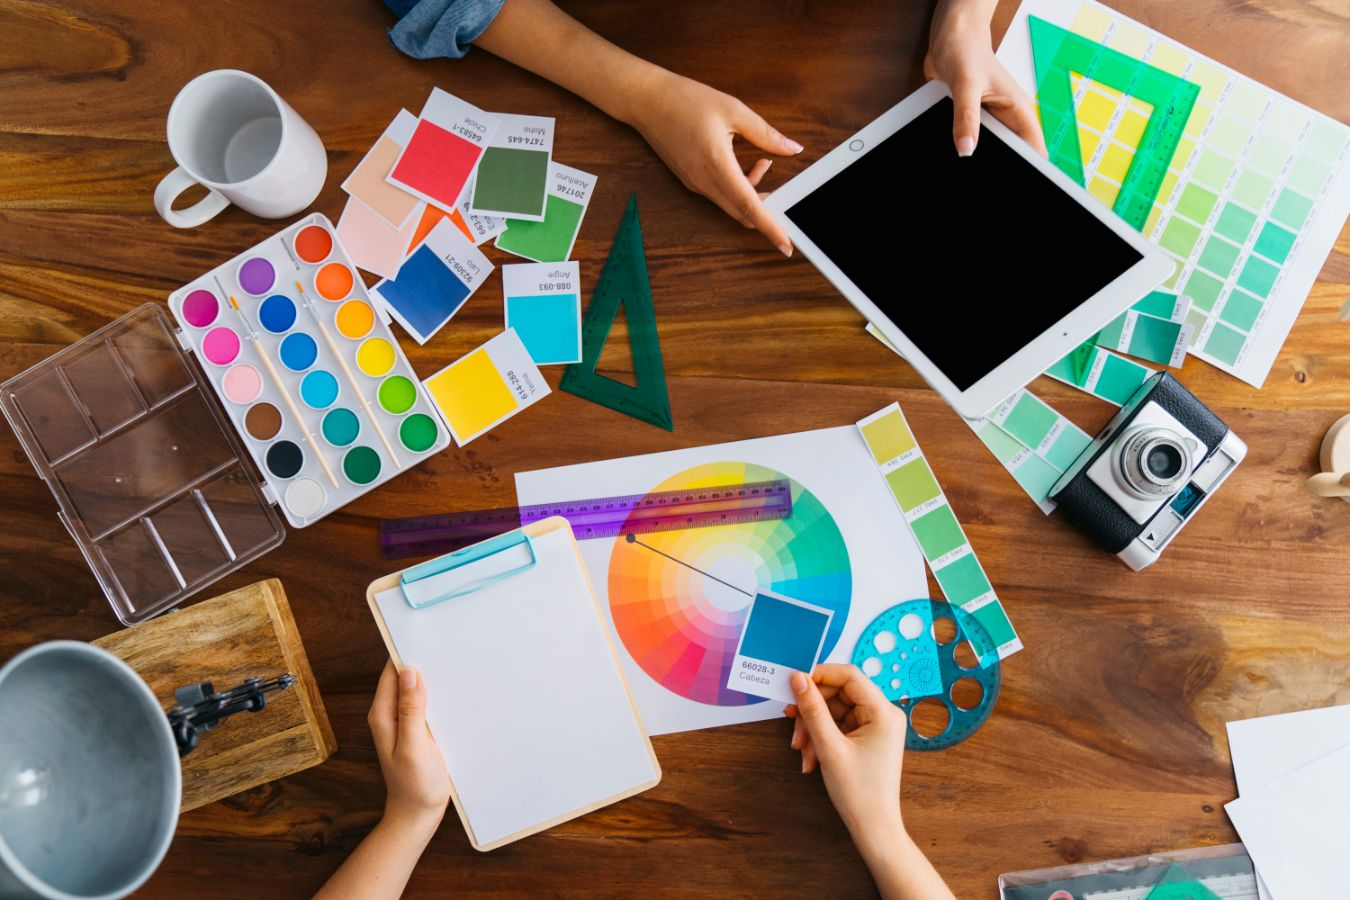 10 Most Popular Graphic Design Companies in the World